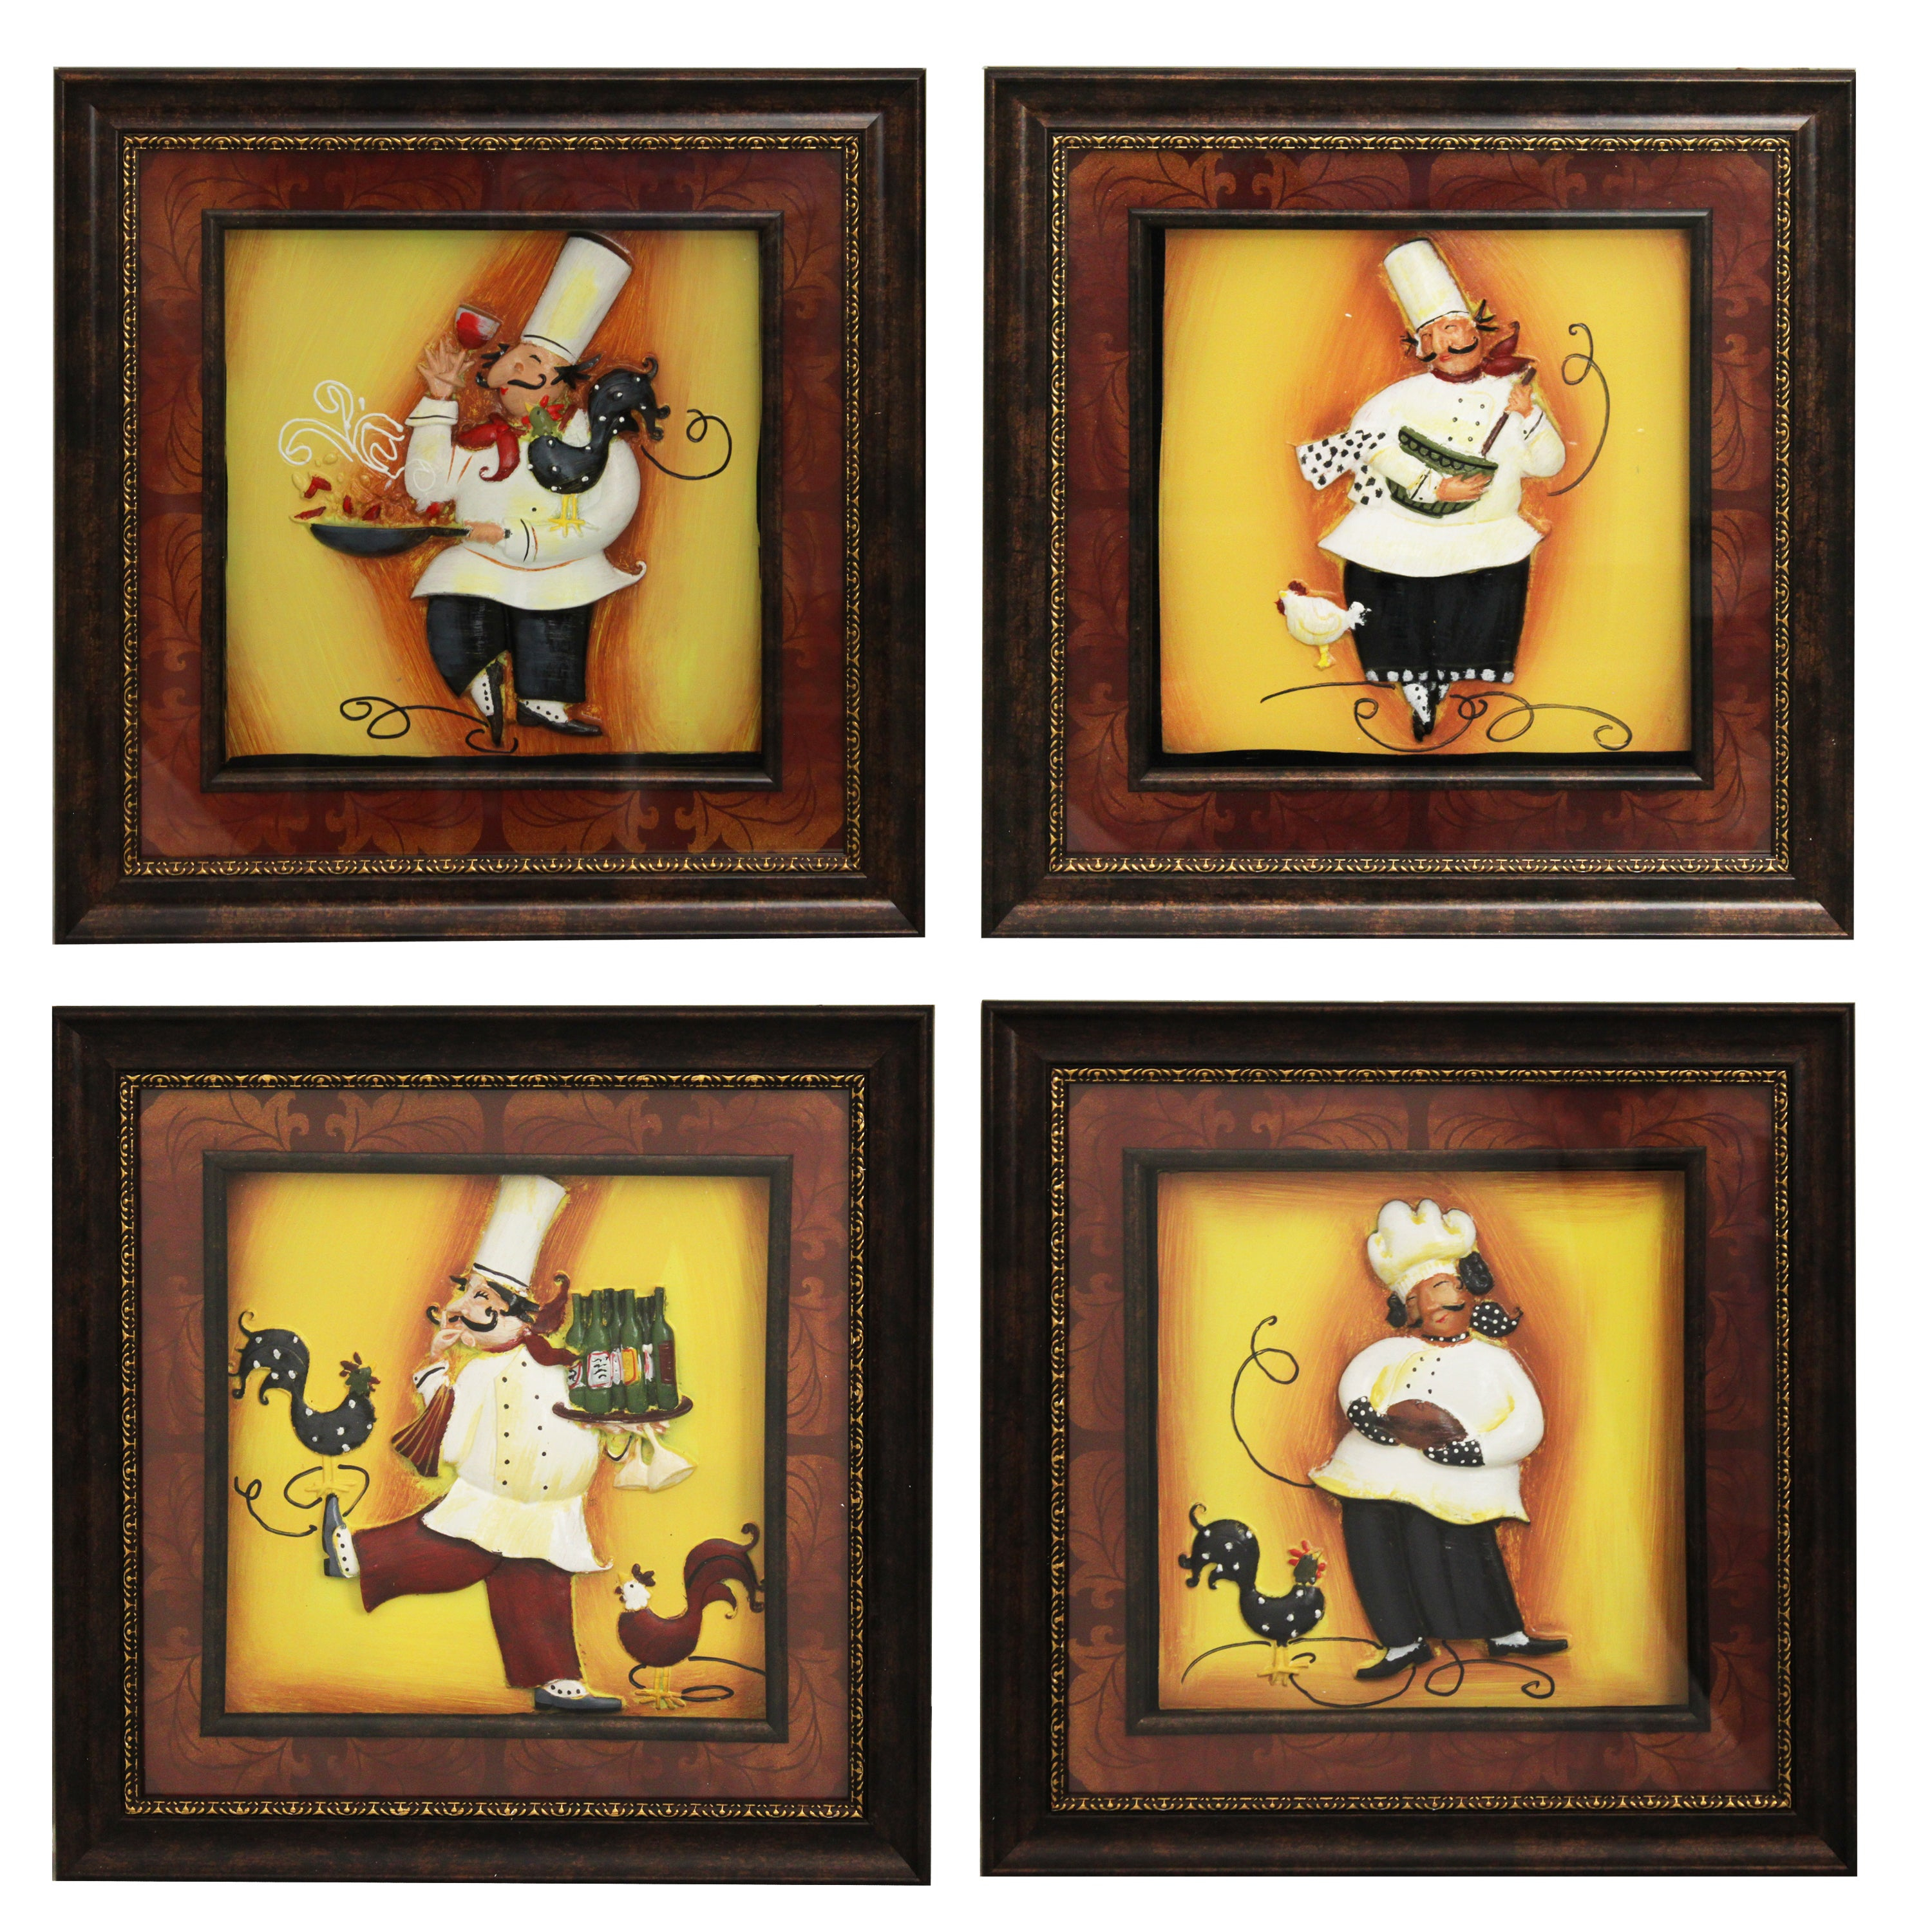 Metal Wall Decor (Set Of 4) Throughout Best And Newest Shop 'chef' Framed 3D Metal Wall Art (Set Of 4) – Free Shipping (View 9 of 20)